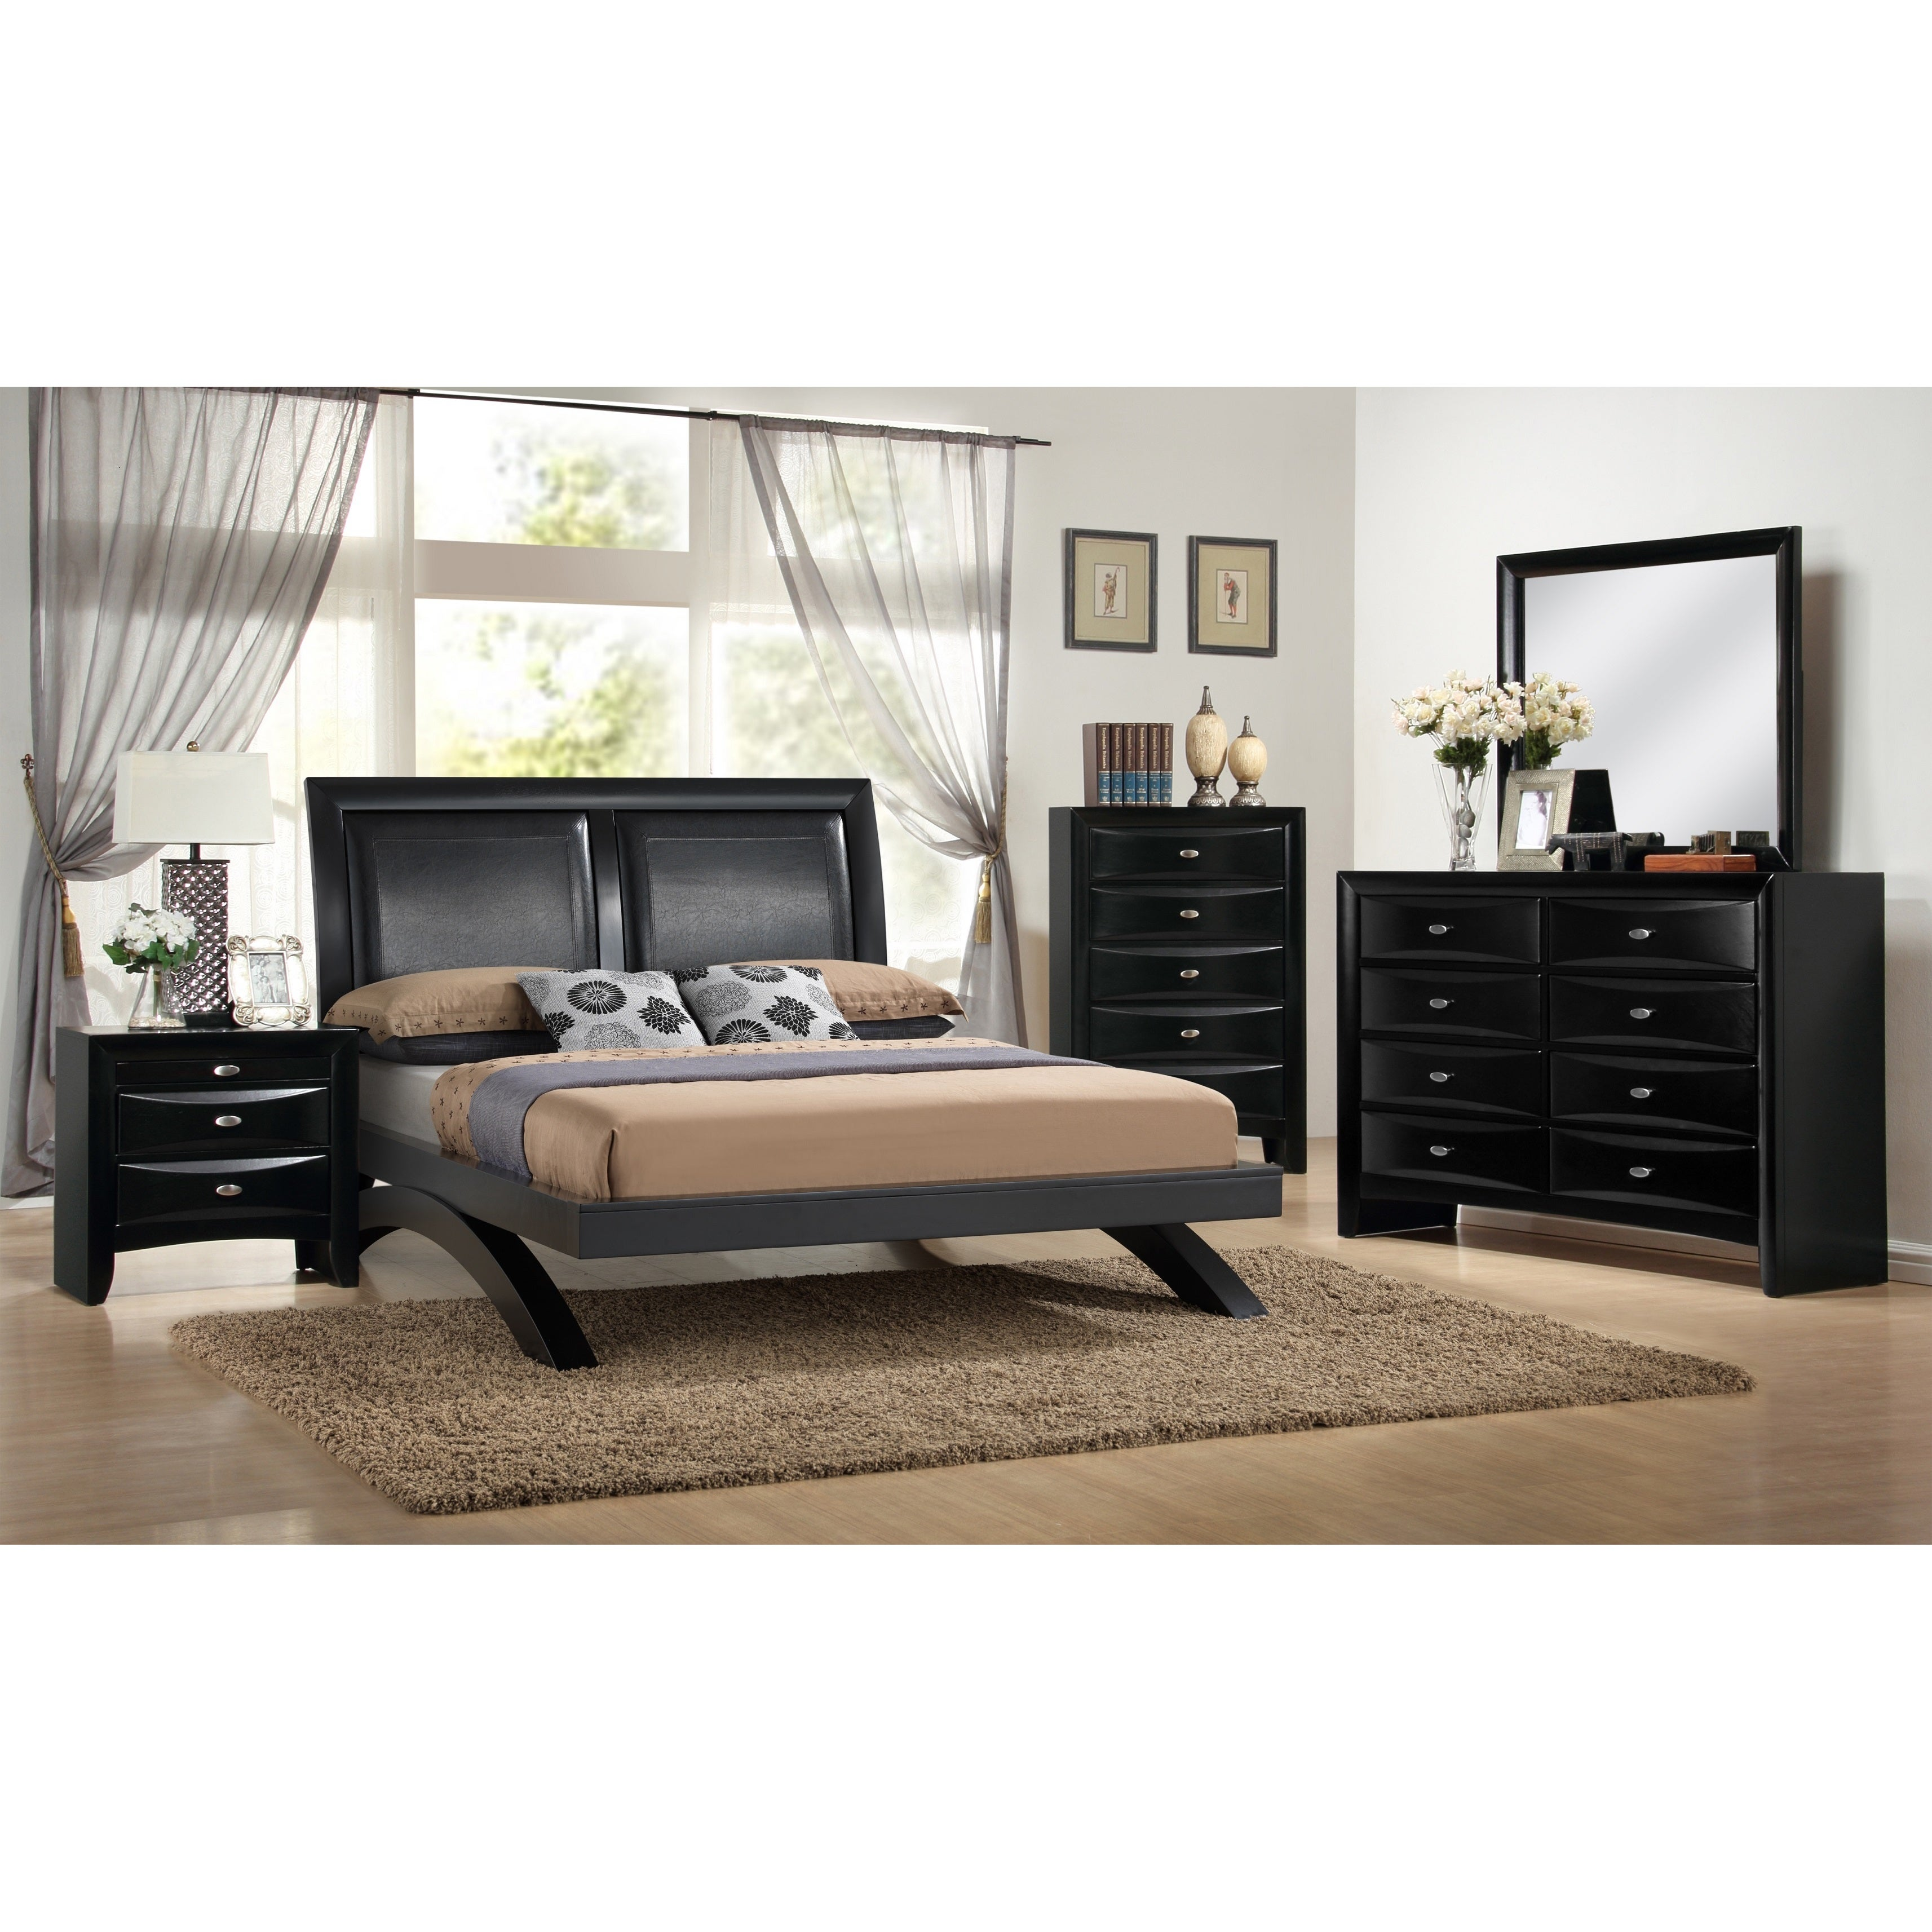 Blemerey 110 Black Wood Arch-Leg Bed Group with Queen Bed, Dresser ...